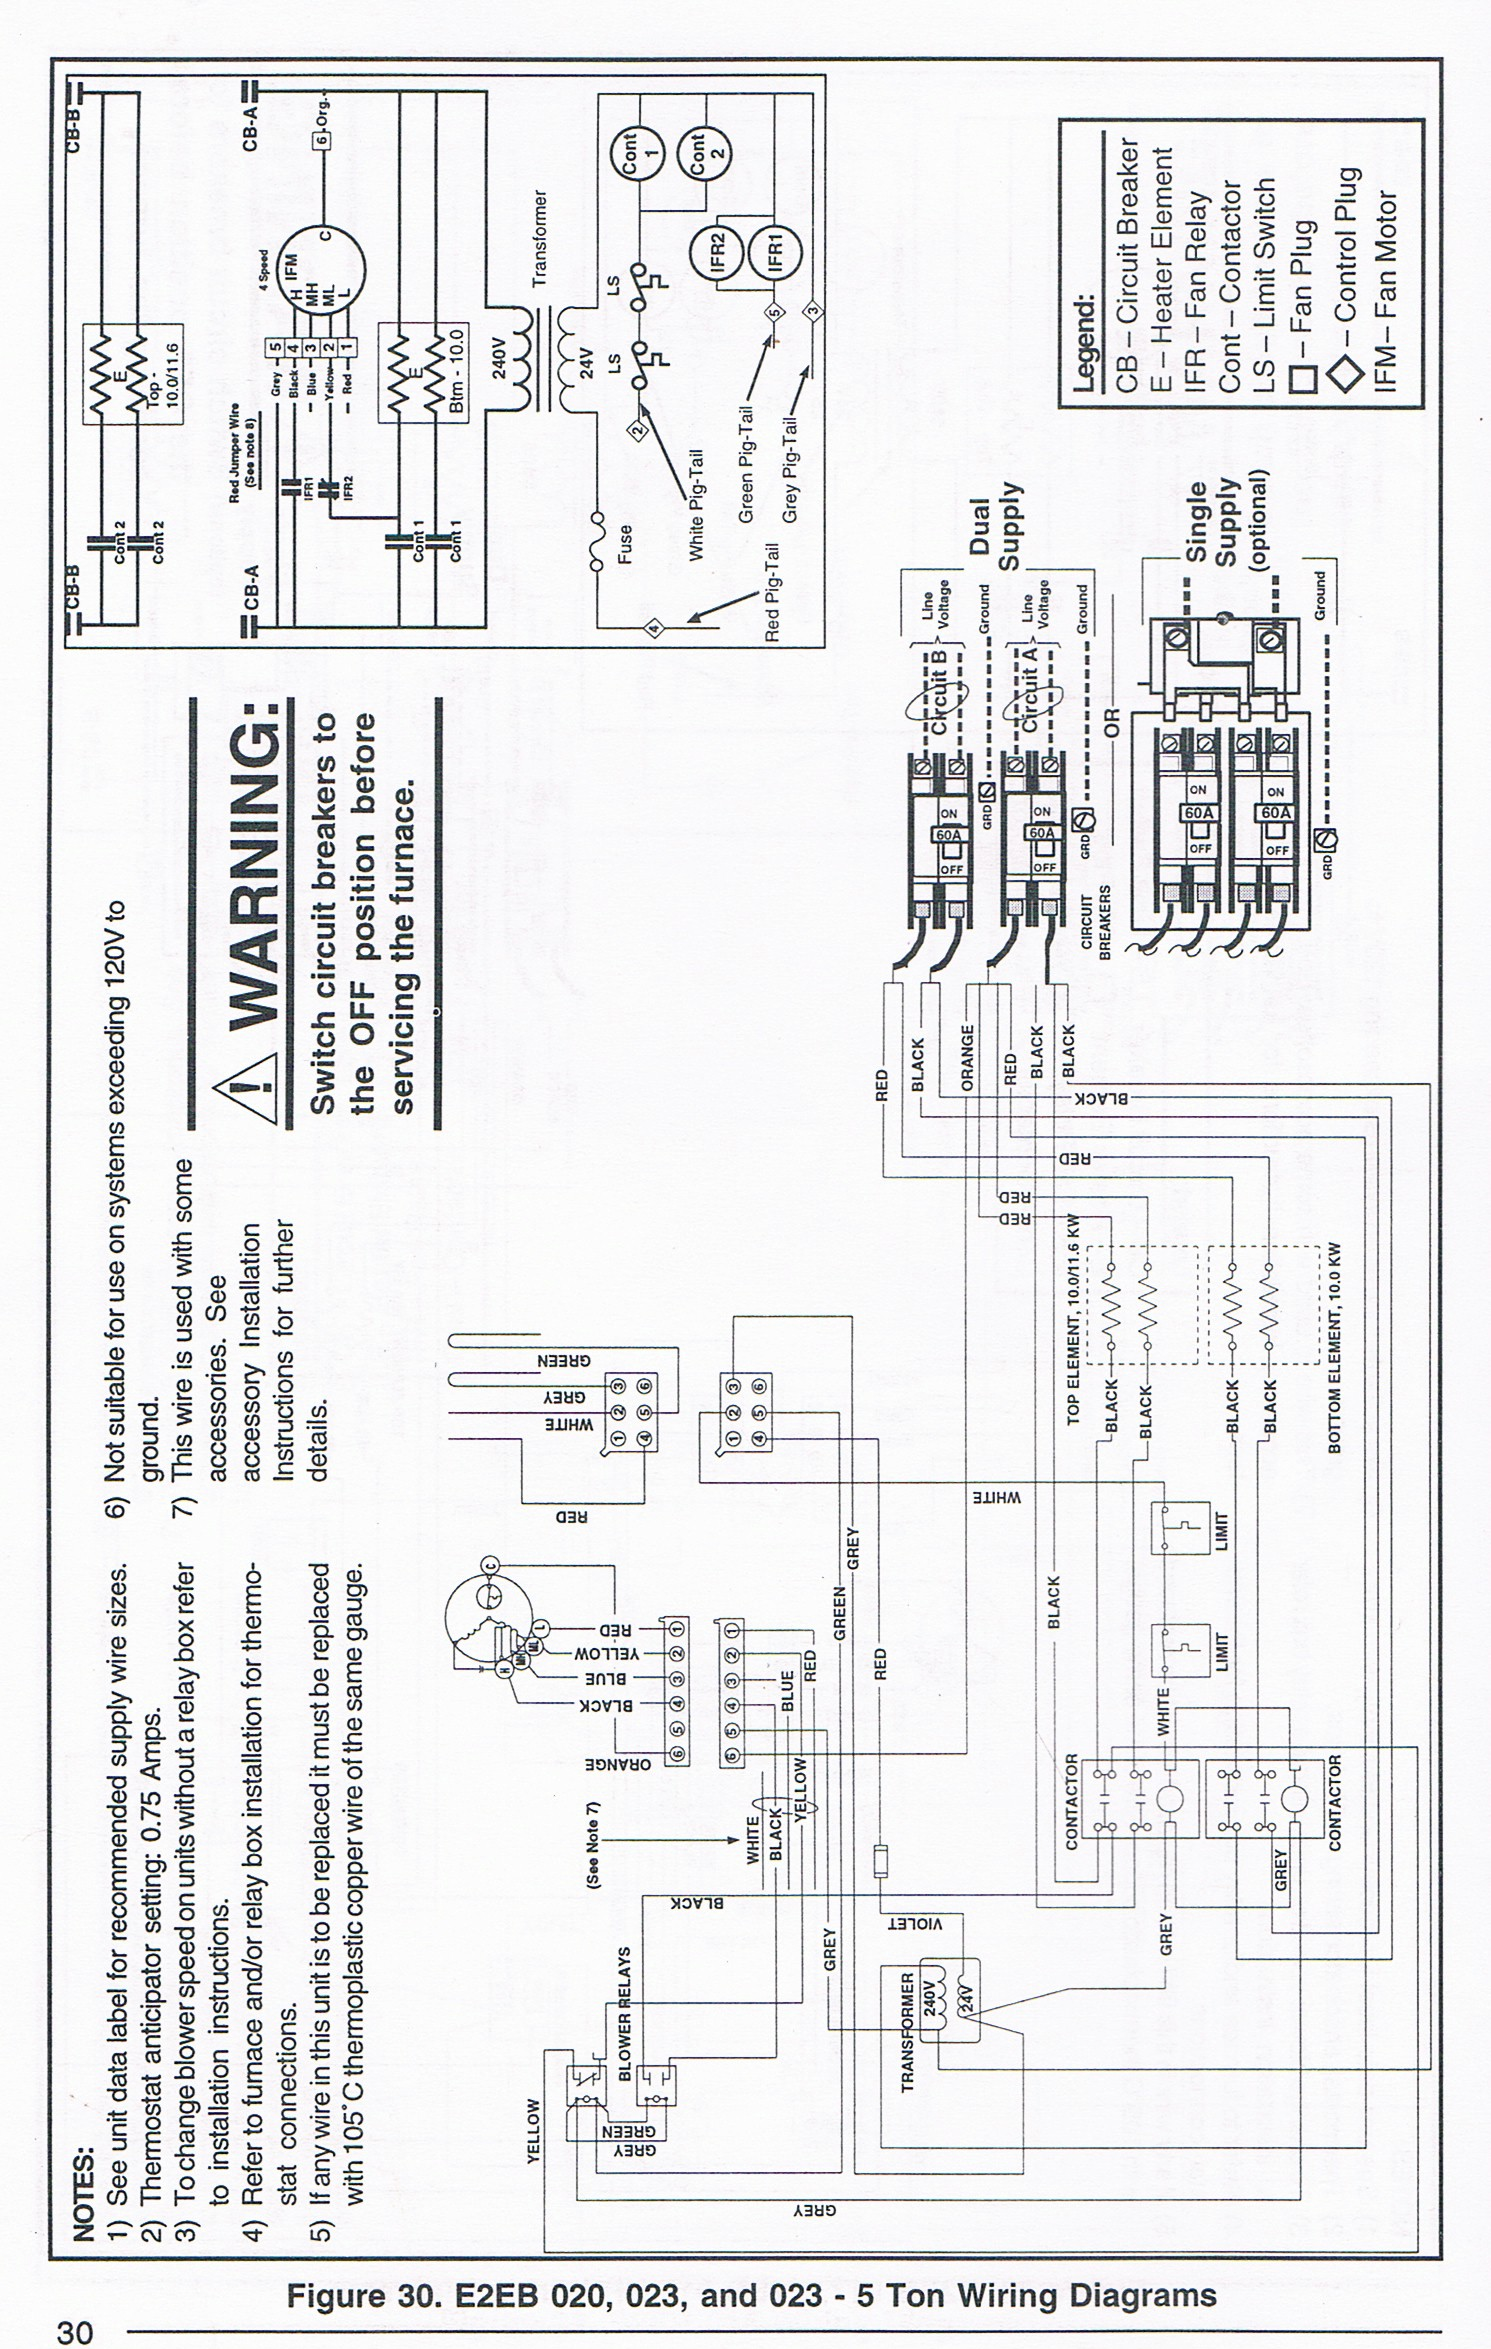 2011 05 04_234443_e2eb e2eb 017ha wiring diagram intertherm wiring diagram \u2022 wiring  at creativeand.co